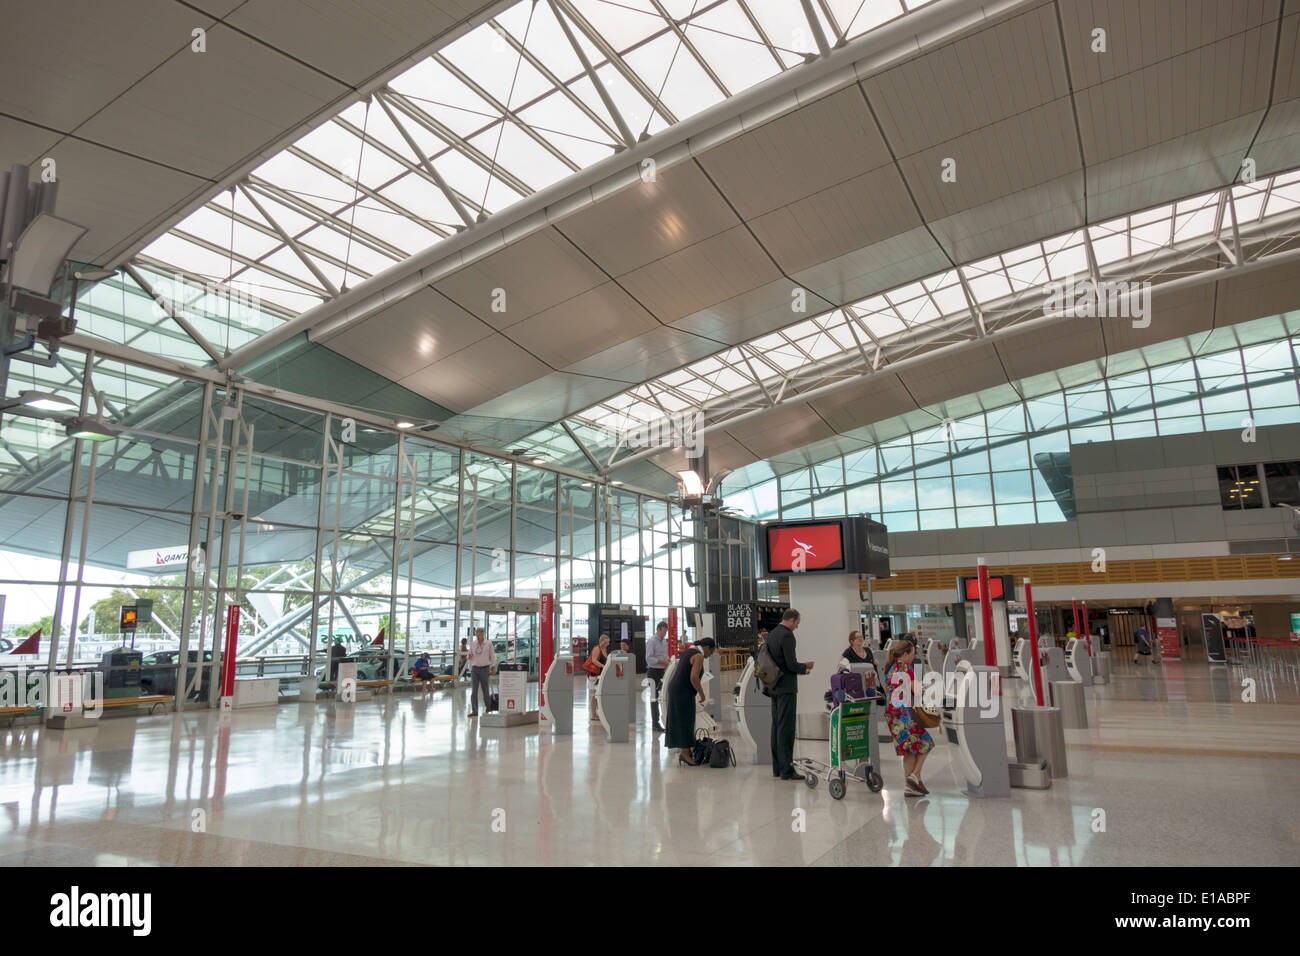 Stock photo sydney australia nsw new south wales kingsford smith airport syd terminal concourse inside interior design architectural self service kiosks